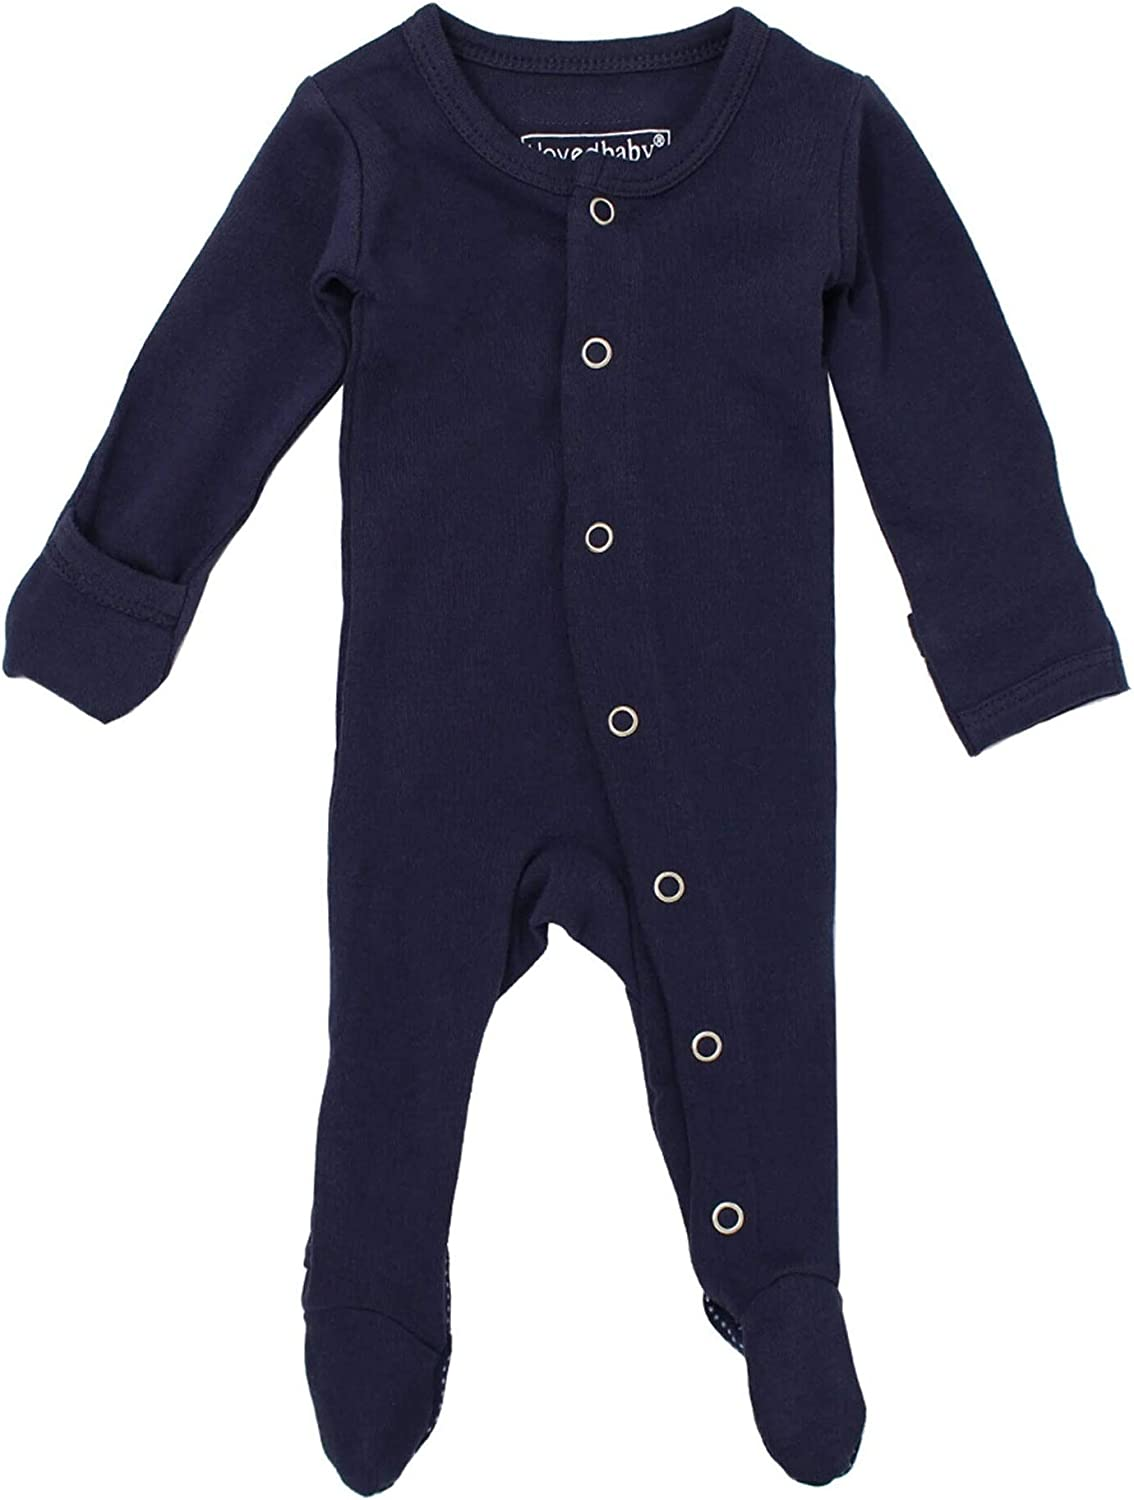 Lovedbaby Unisex Baby Organic Cotton Gloved-Sleeve Footed Overall